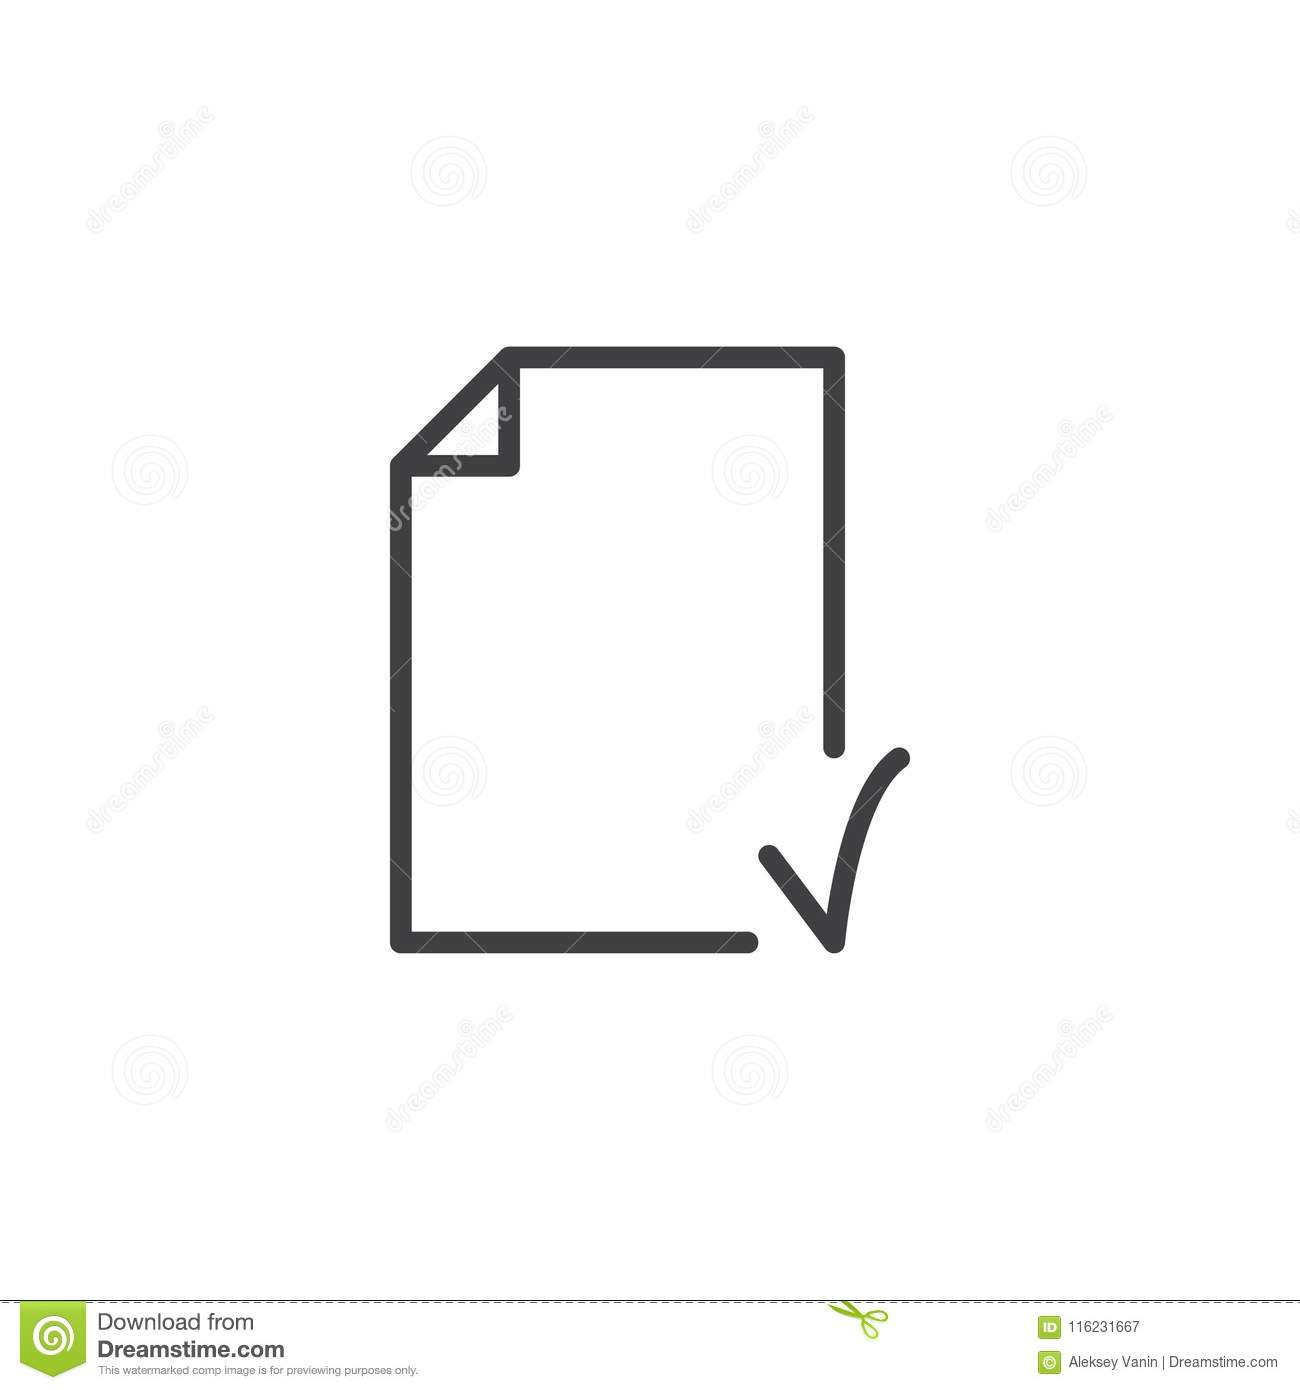 document check outline icon stock vector illustration of